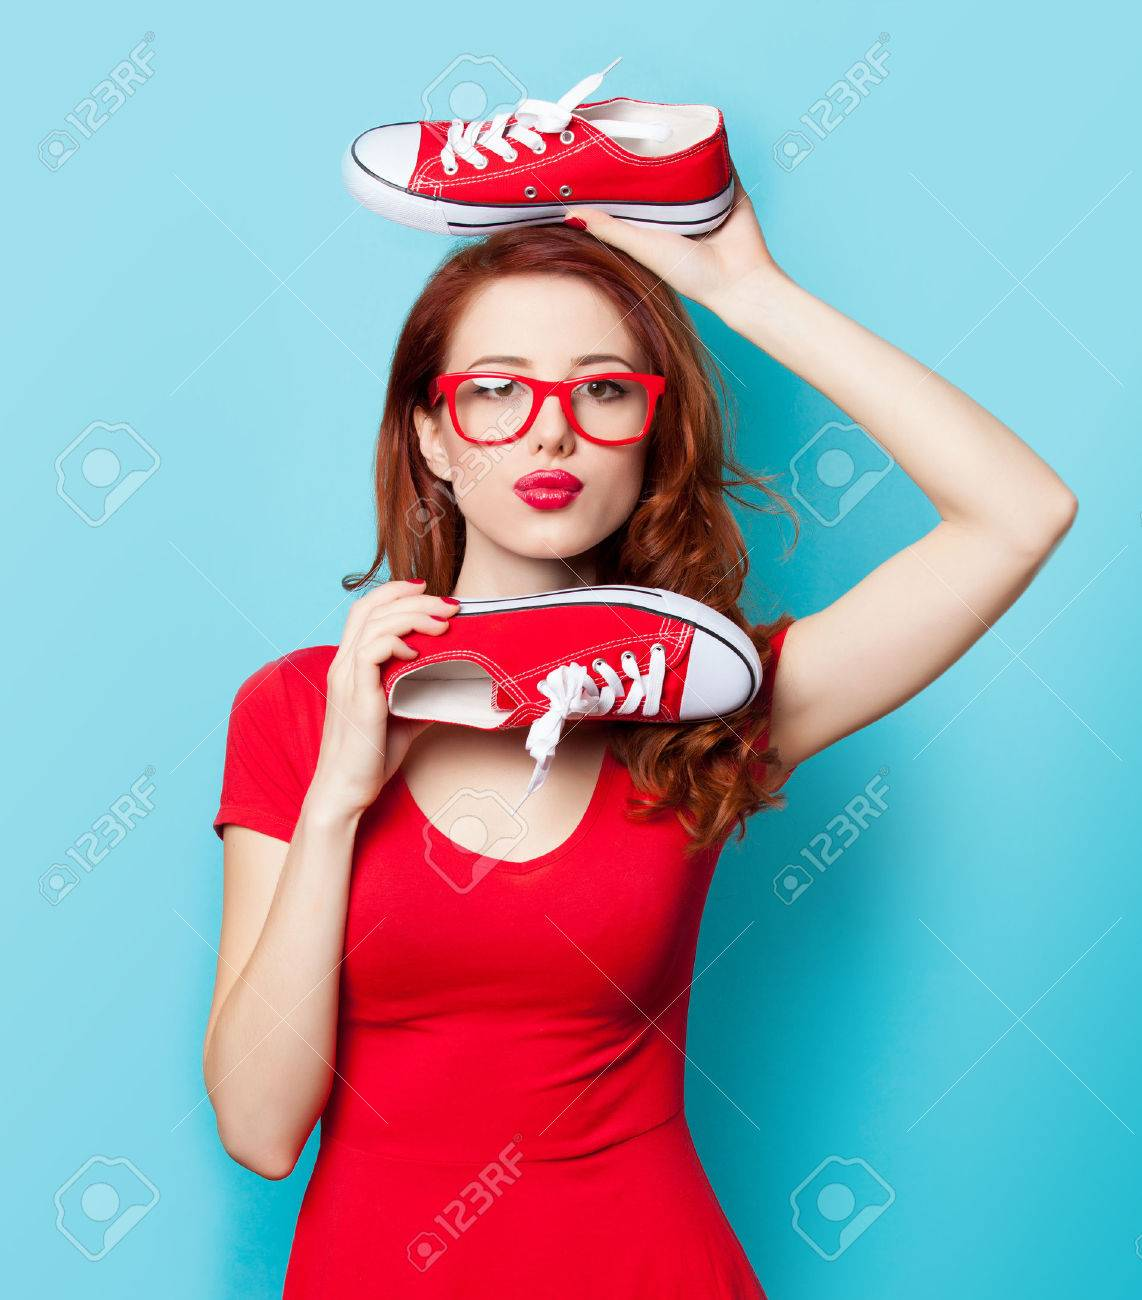 Surprised redhead girl in red dress with gumshoes on blue background. - 37324317